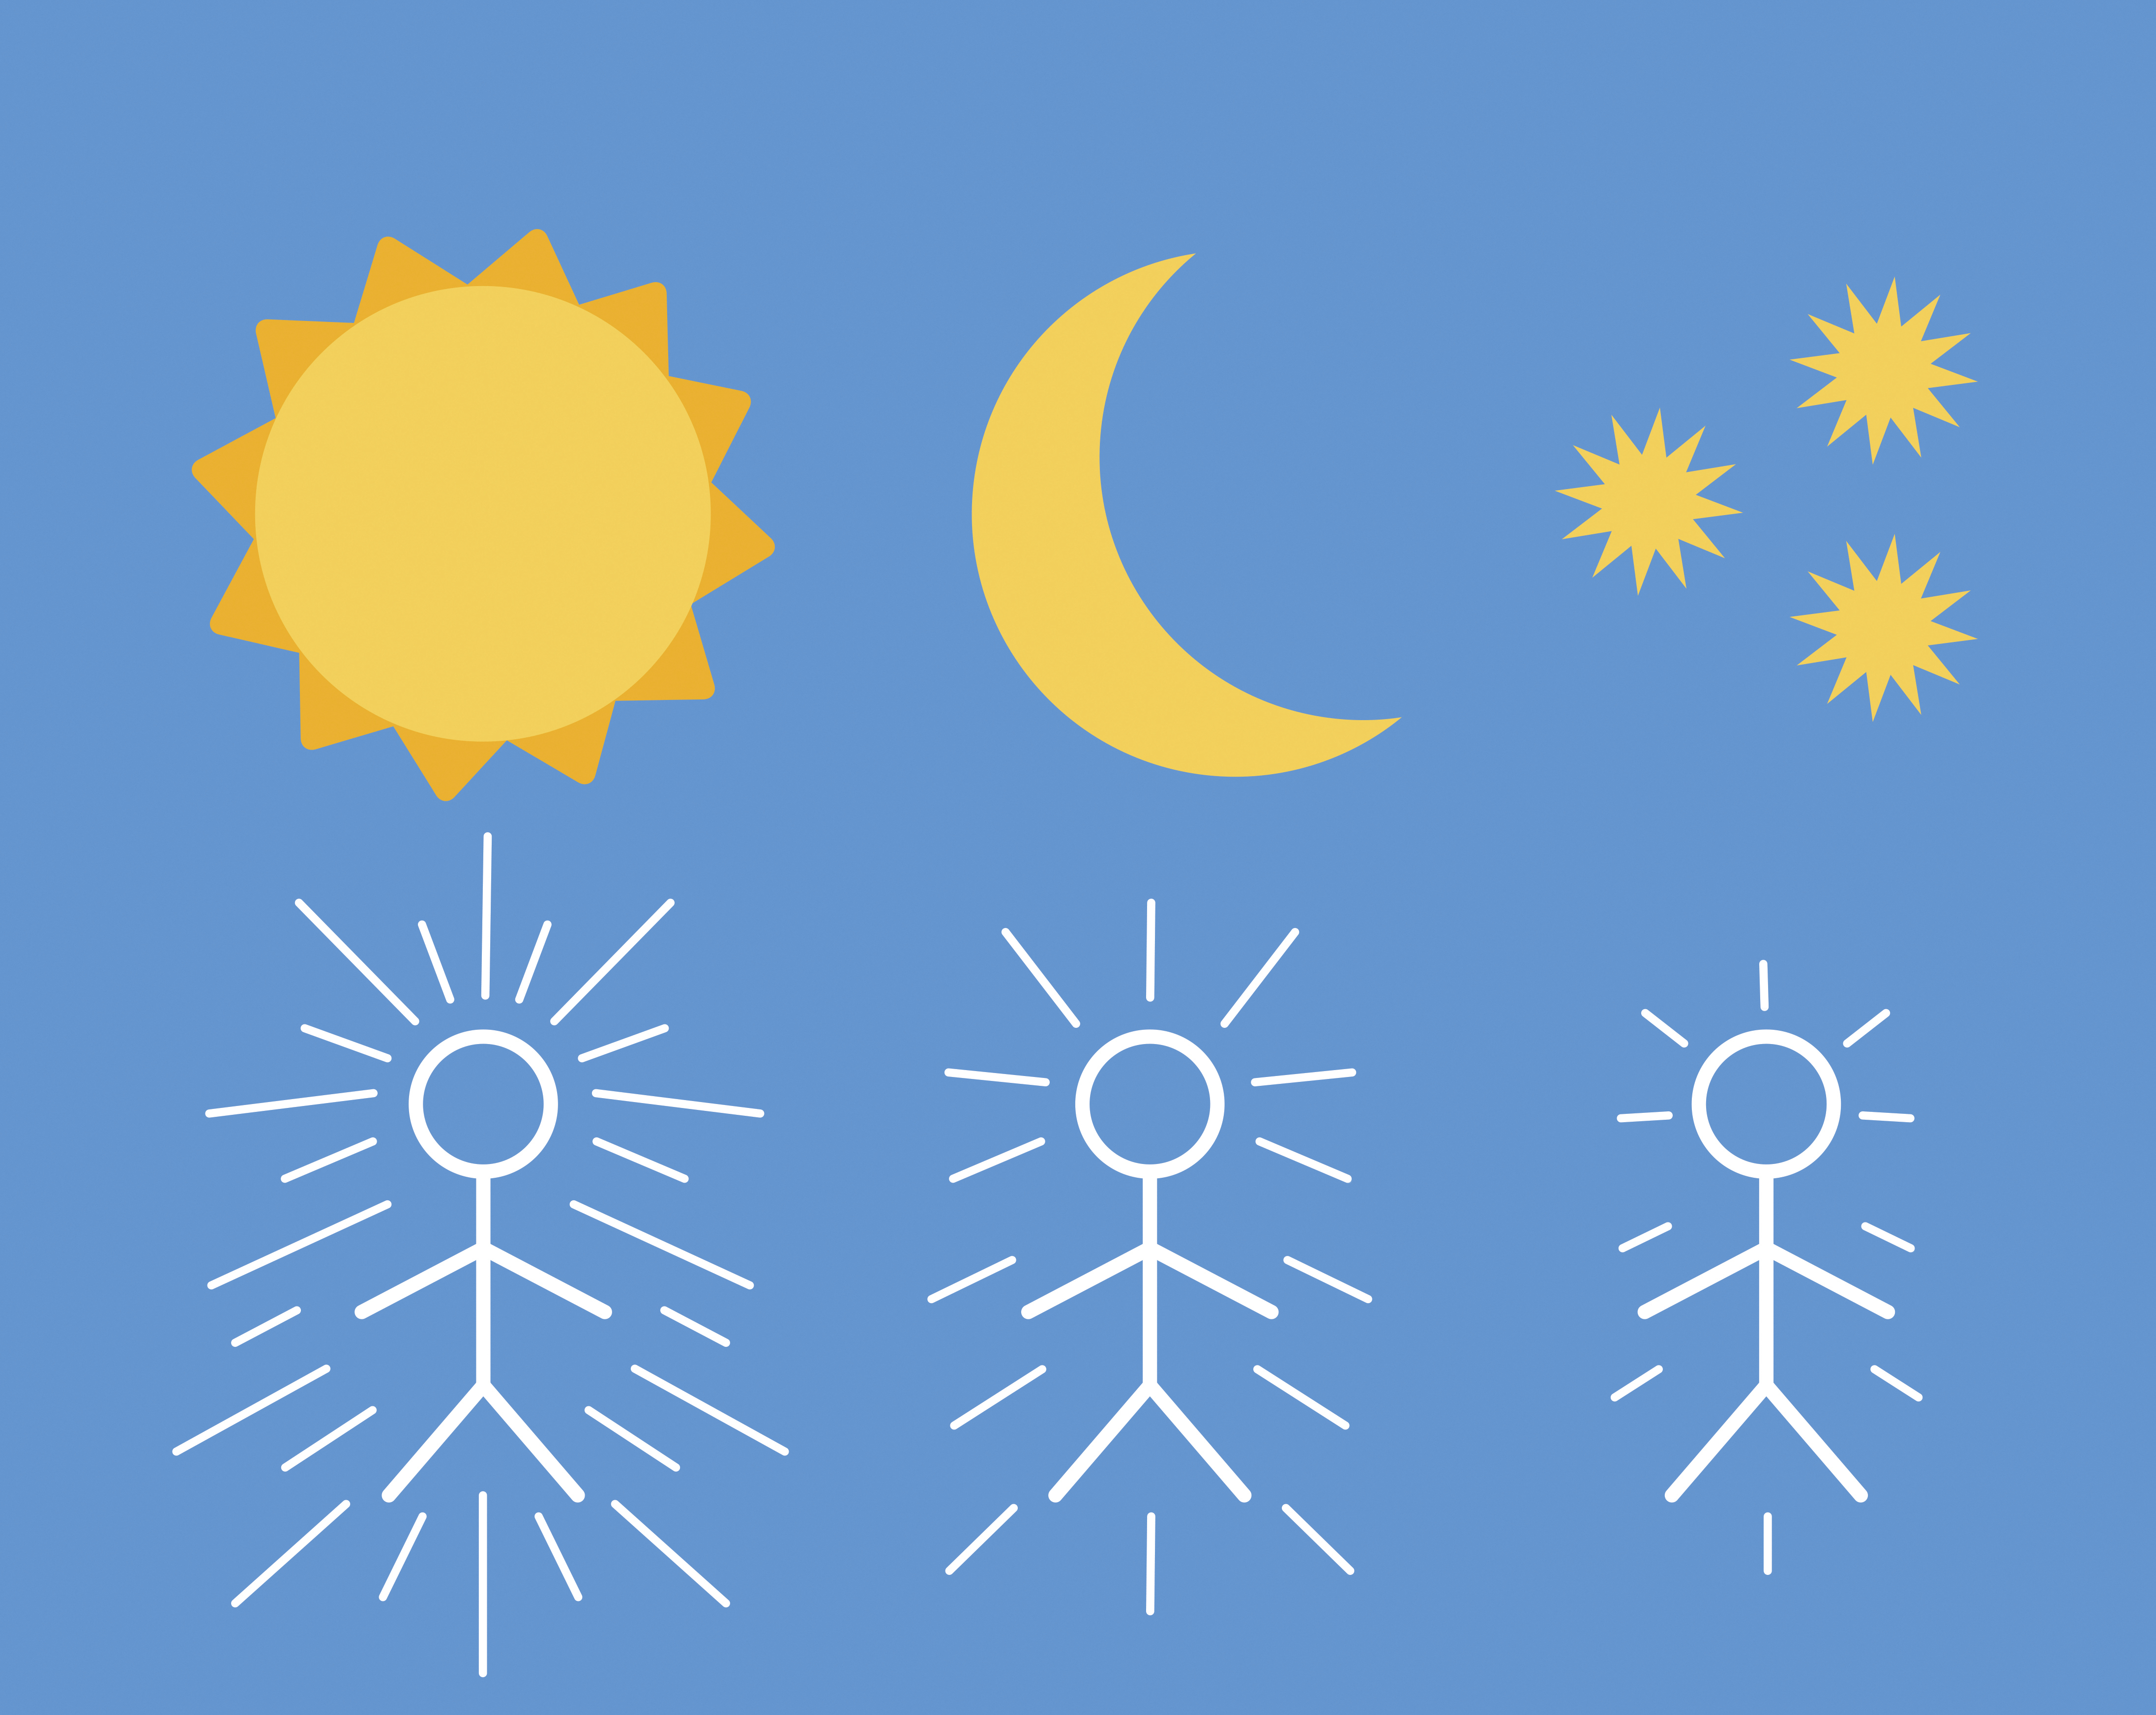 The glory of the sun, moon, and stars are compared with celestial, terrestrial, and telestial glory, respectively.